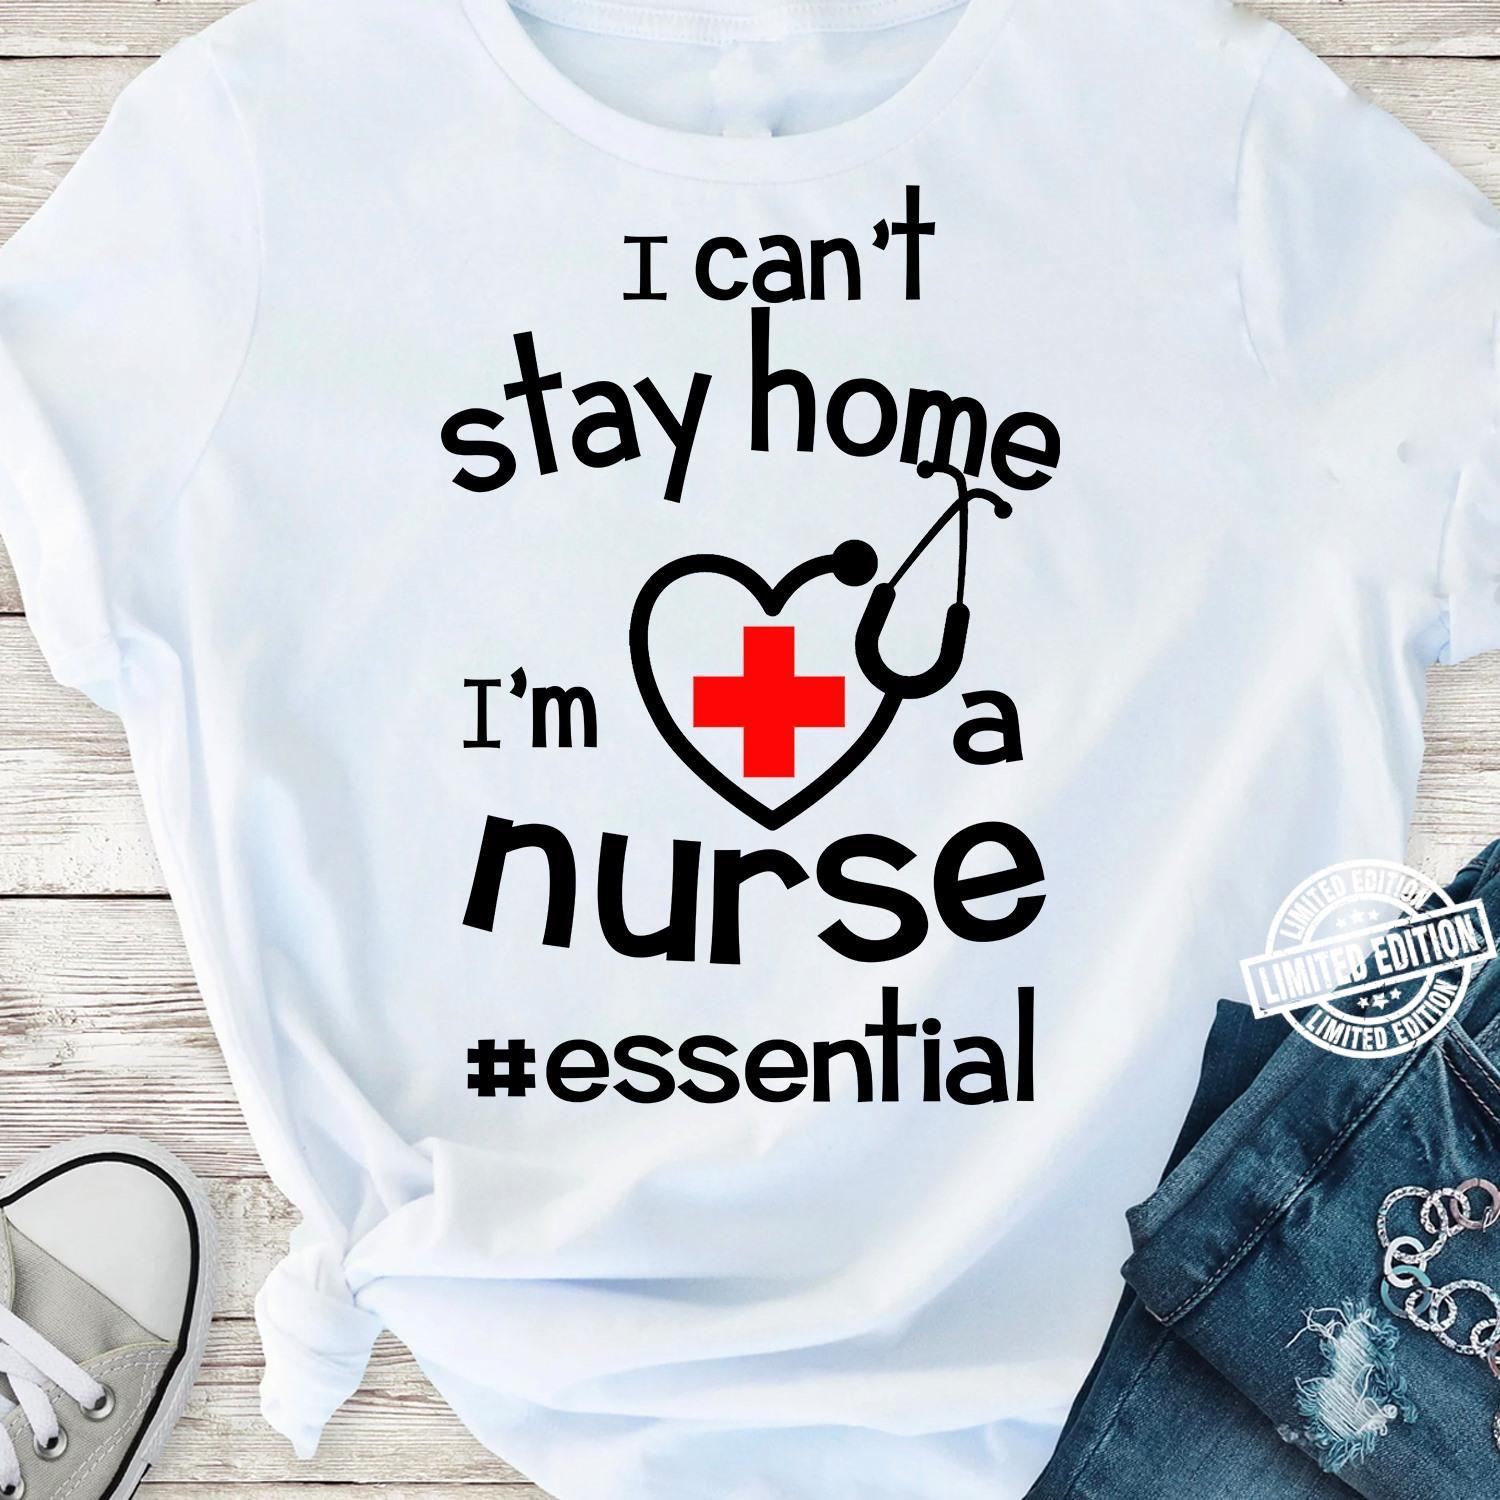 I can't stay home I'm a nurse essential shirt